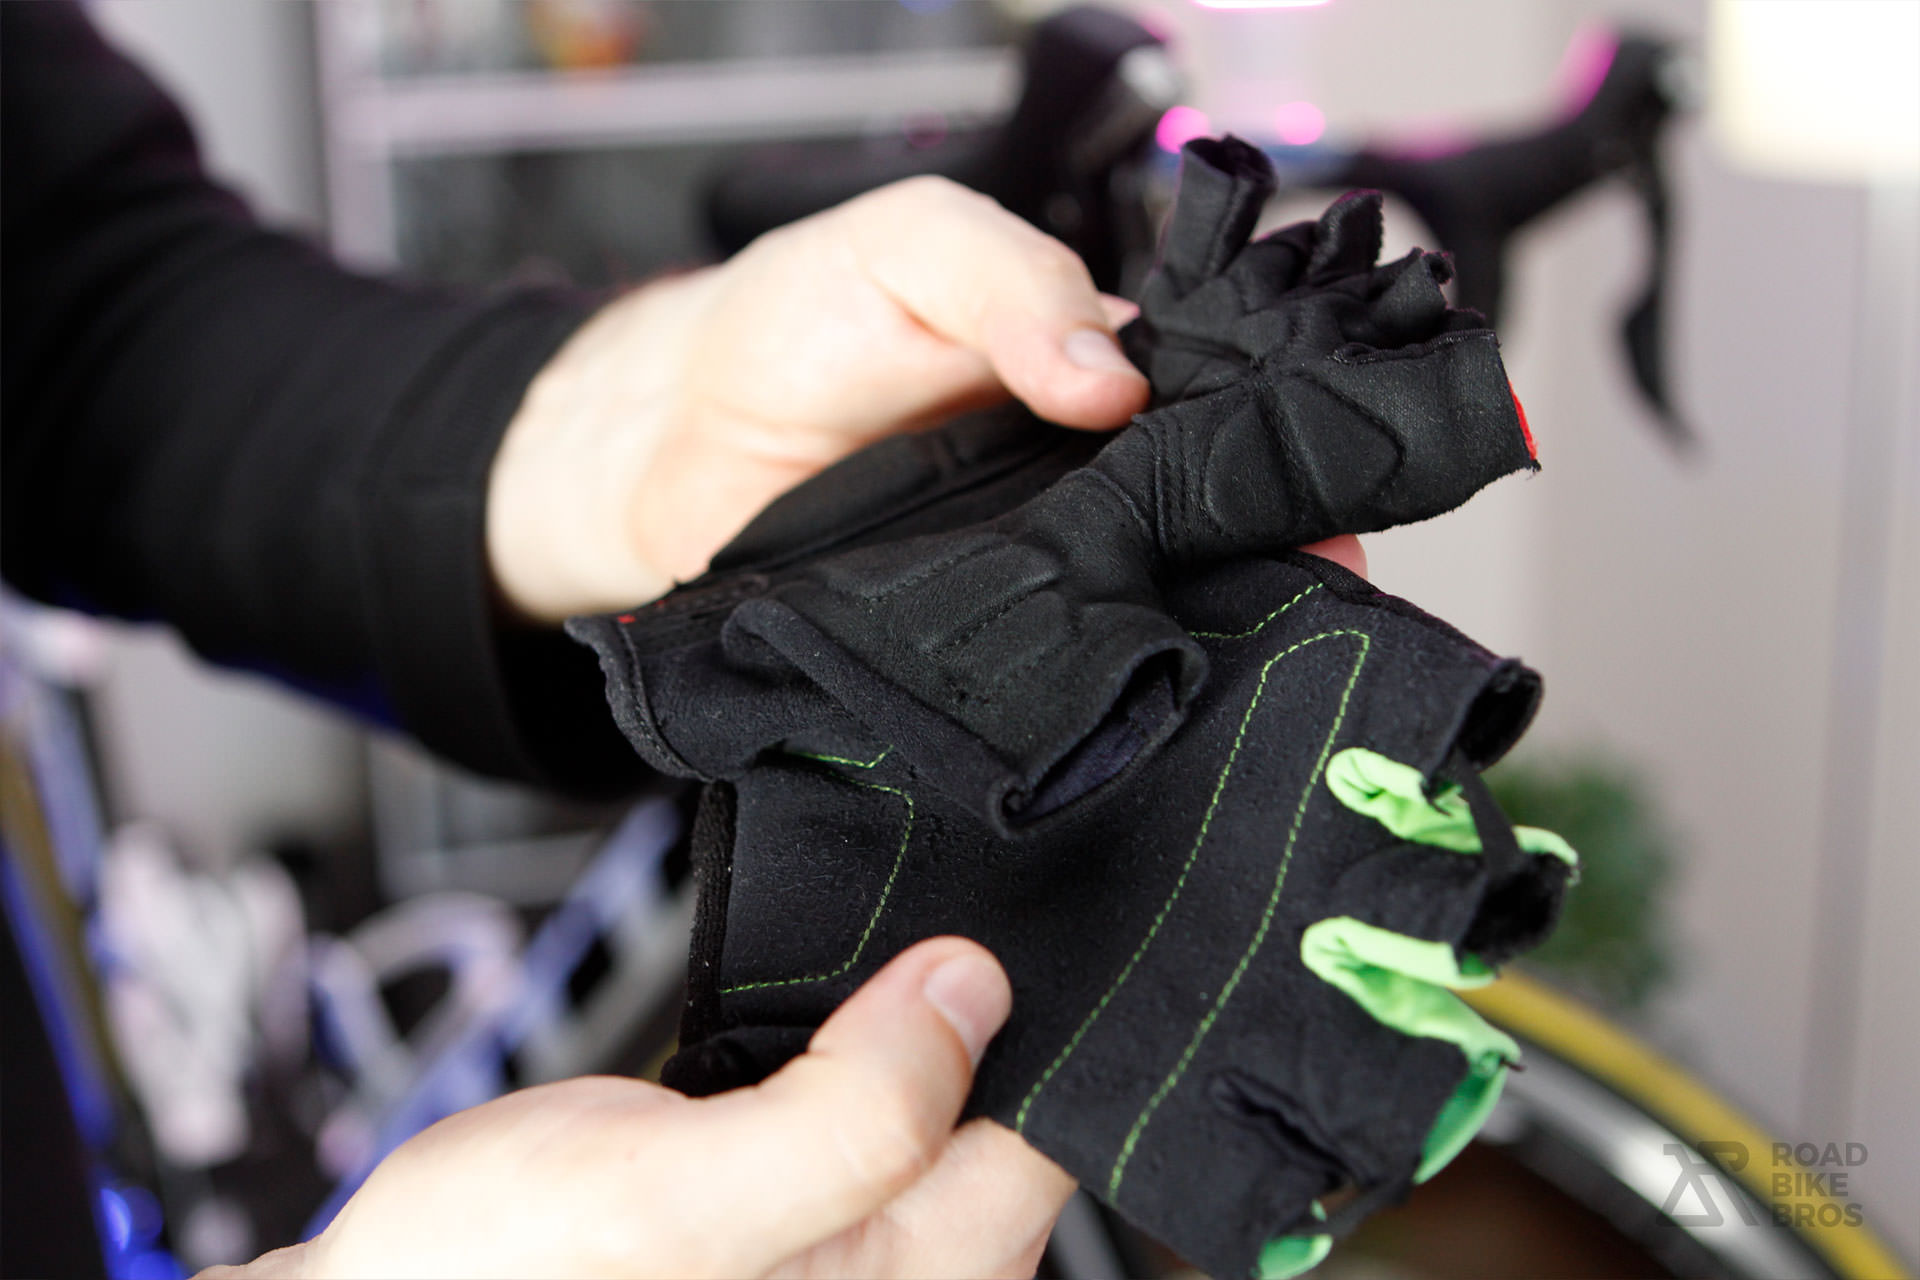 How-To Increase Comfort Road Bike Gloves Padding Vibration Scott